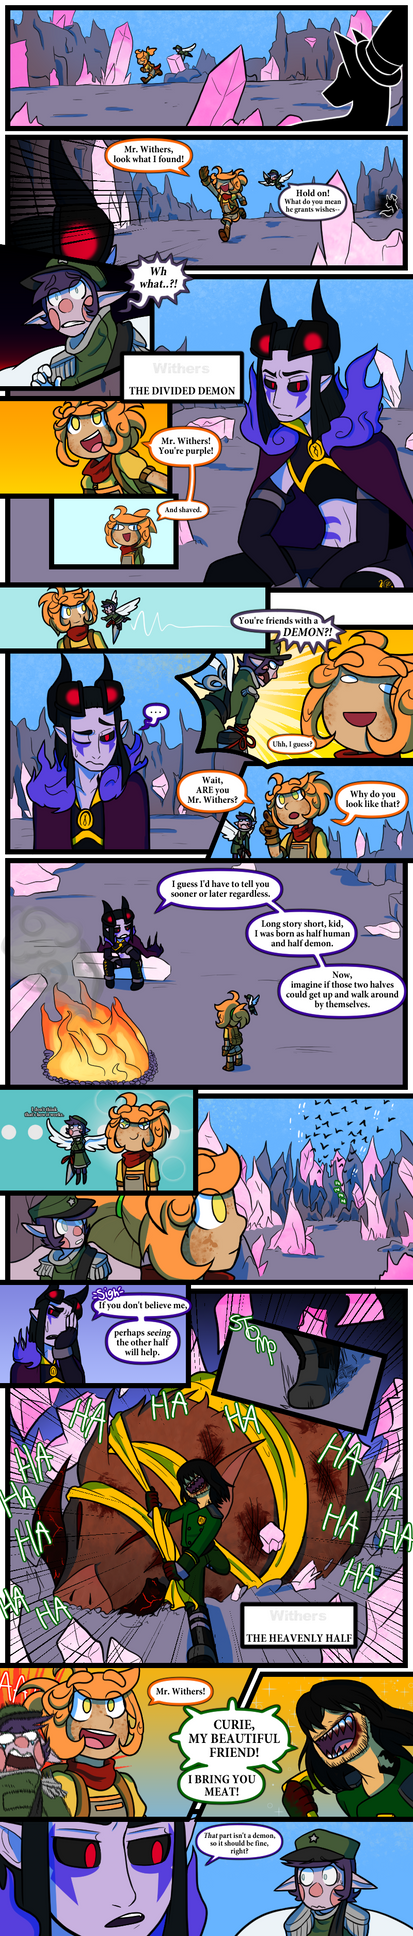 Higher World OCT Round 1 - Page 4 by sarahthecat